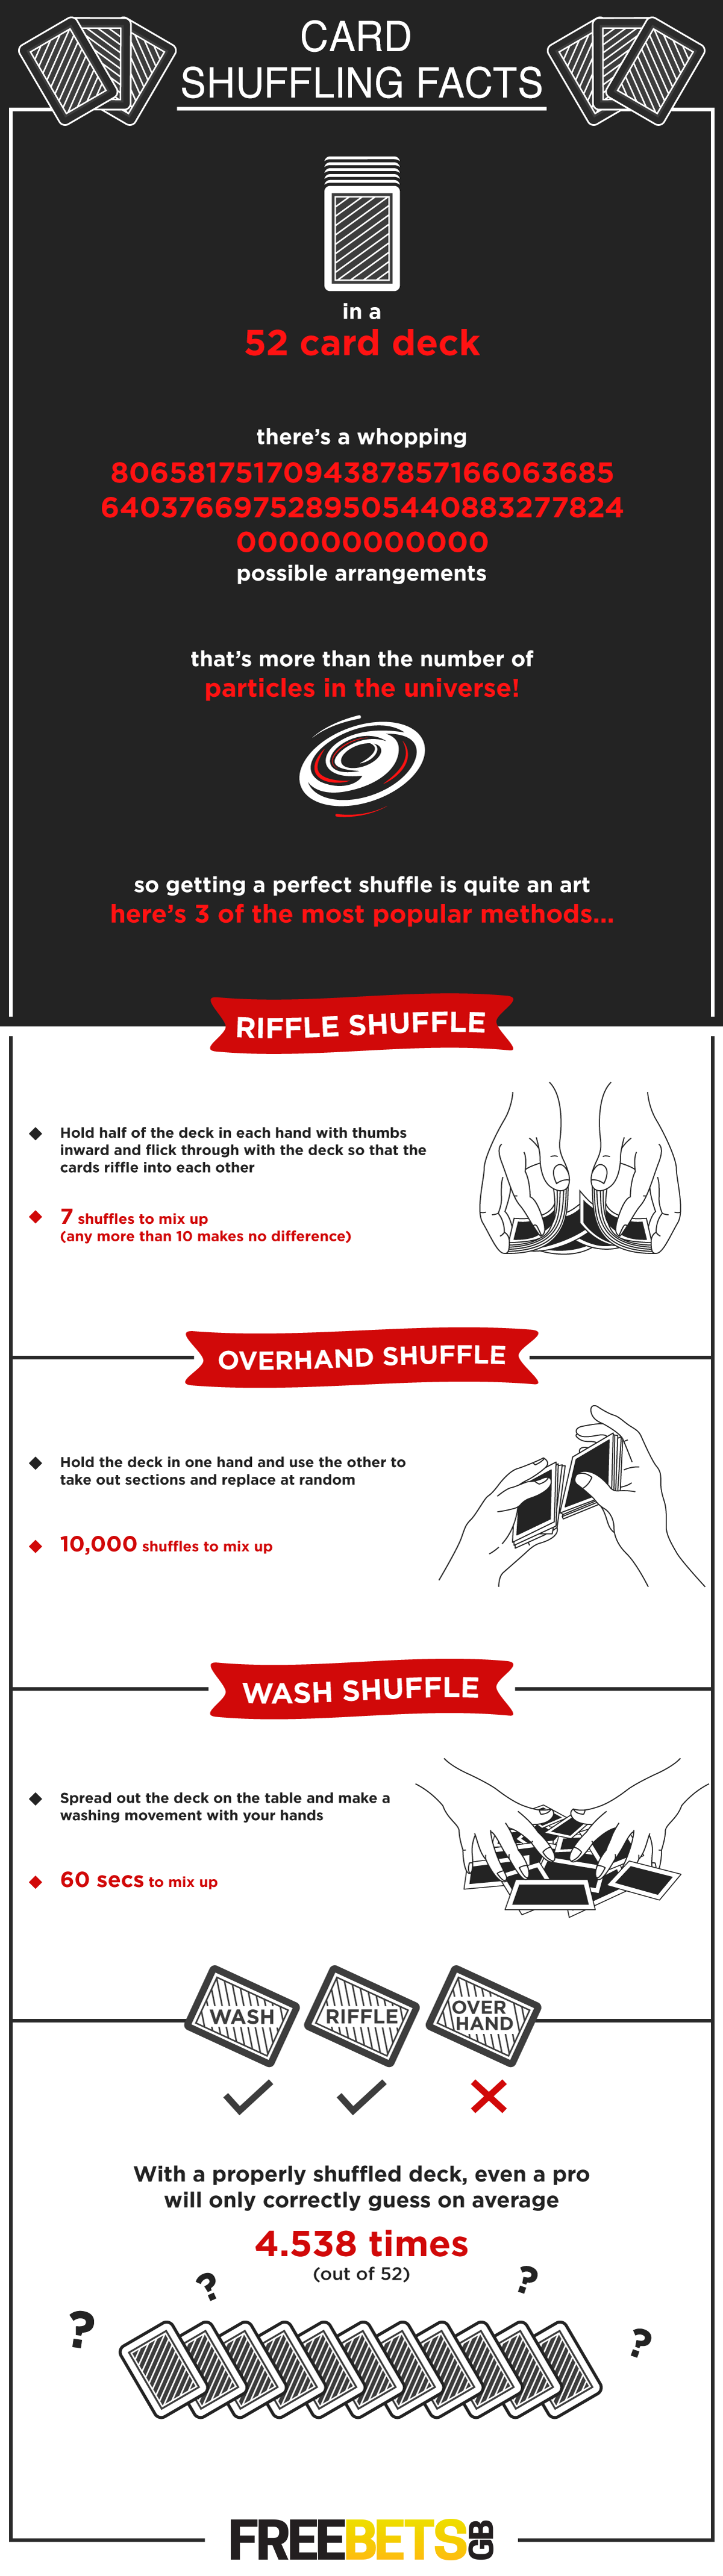 card-shuffling-facts-free-bets-gb-infographic-plaza